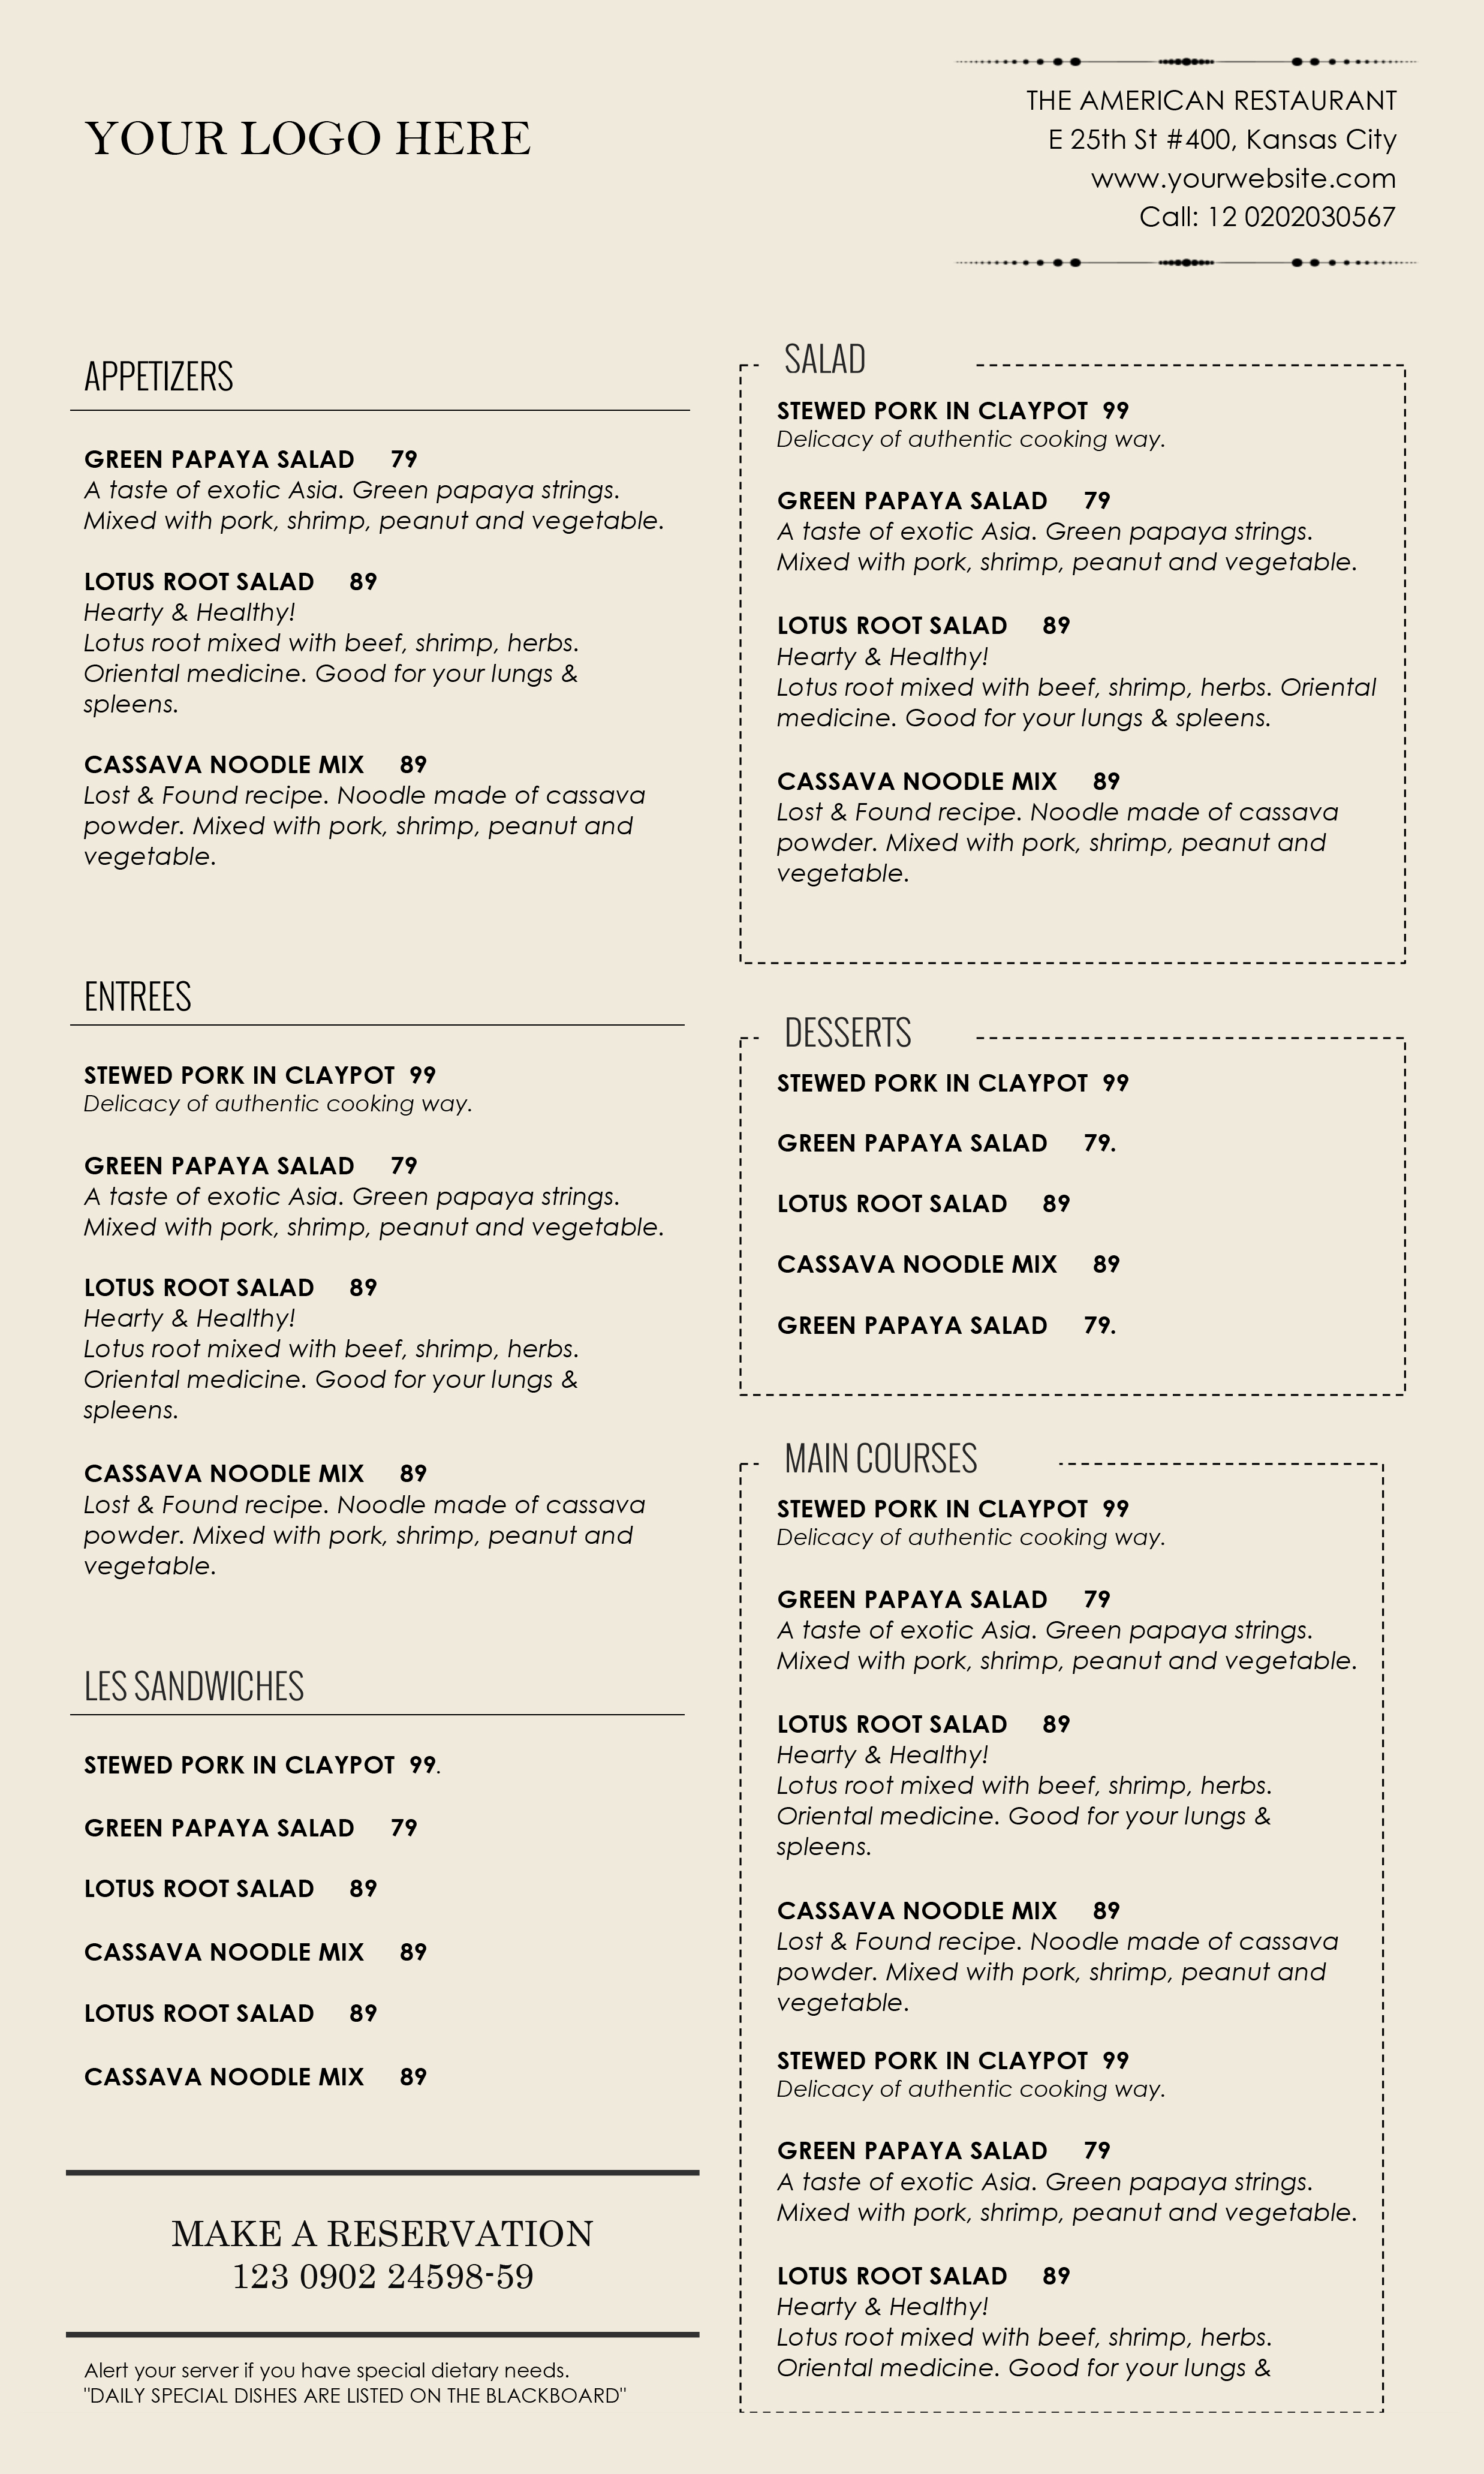 Restaurant menu template microsoft word juvecenitdelacabrera restaurant flashek Choice Image